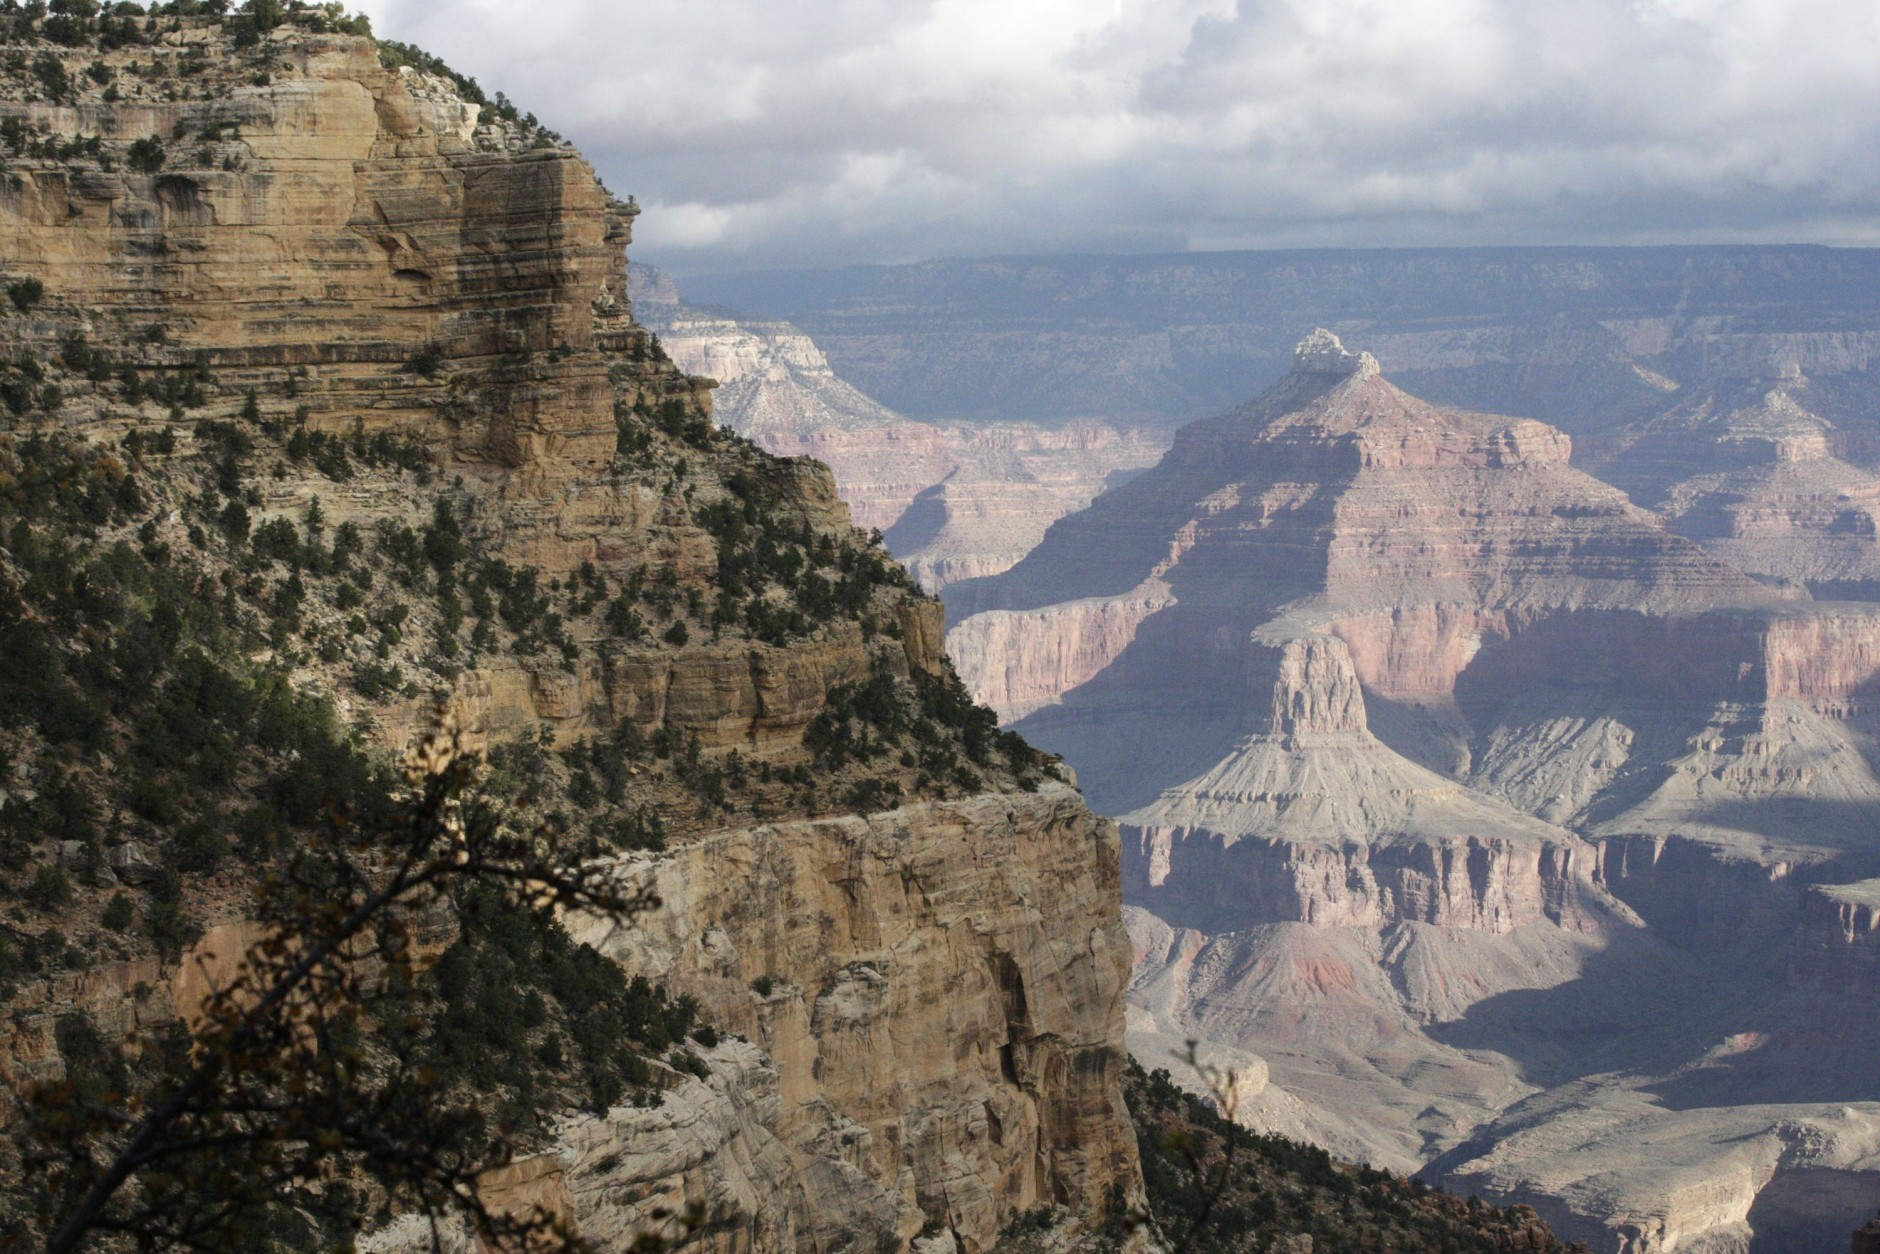 FILE - This Oct. 22, 2012, file photo shows a view from the South Rim of the Grand Canyon National Park in Arizona.(AP Photo/Rick Bowmer, File)